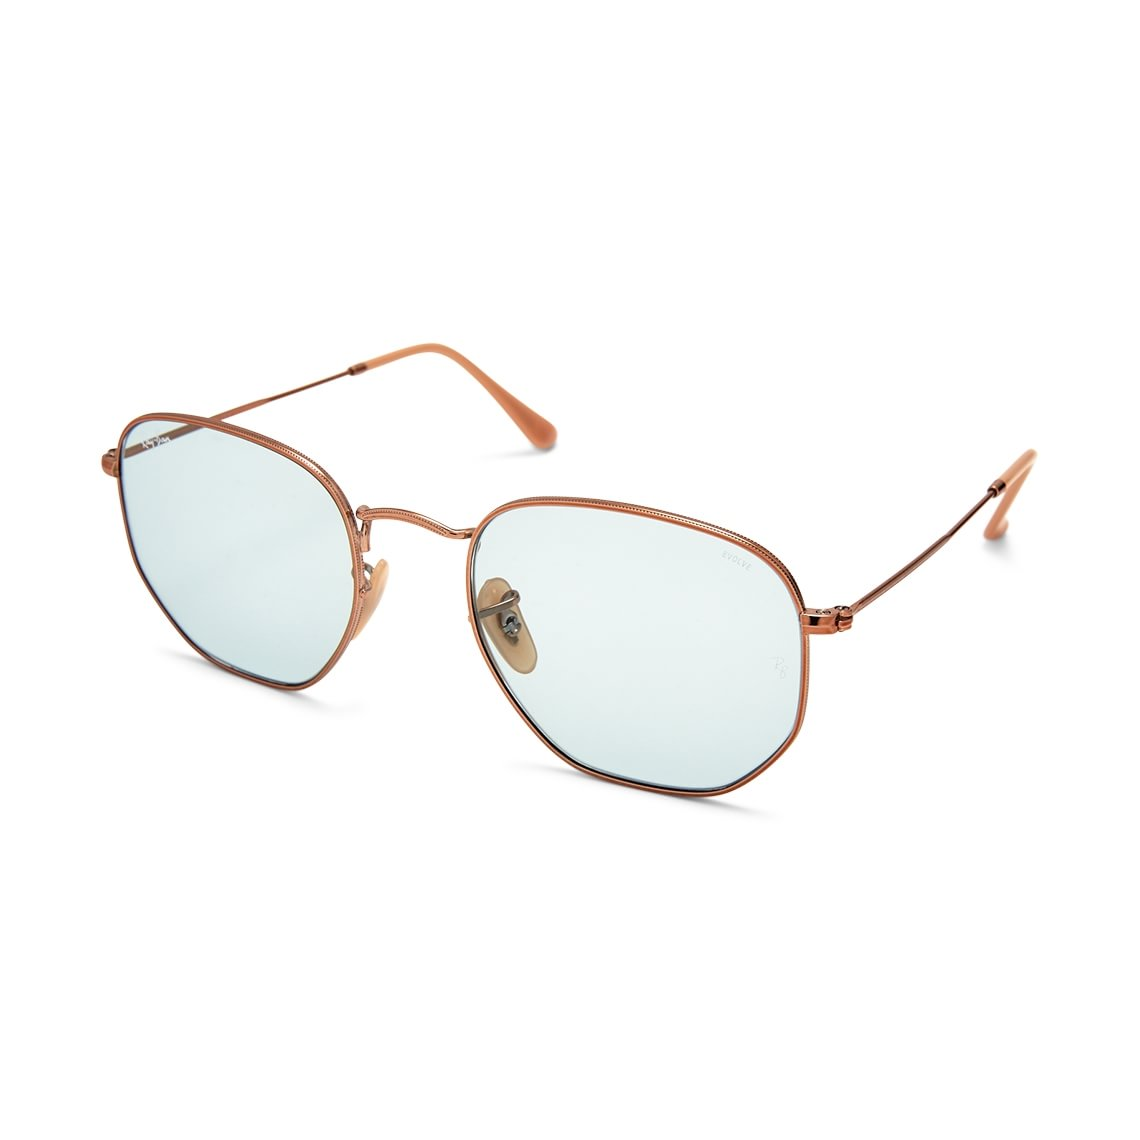 Ray-Ban Hexagonal RB3548N 91310Y 5121